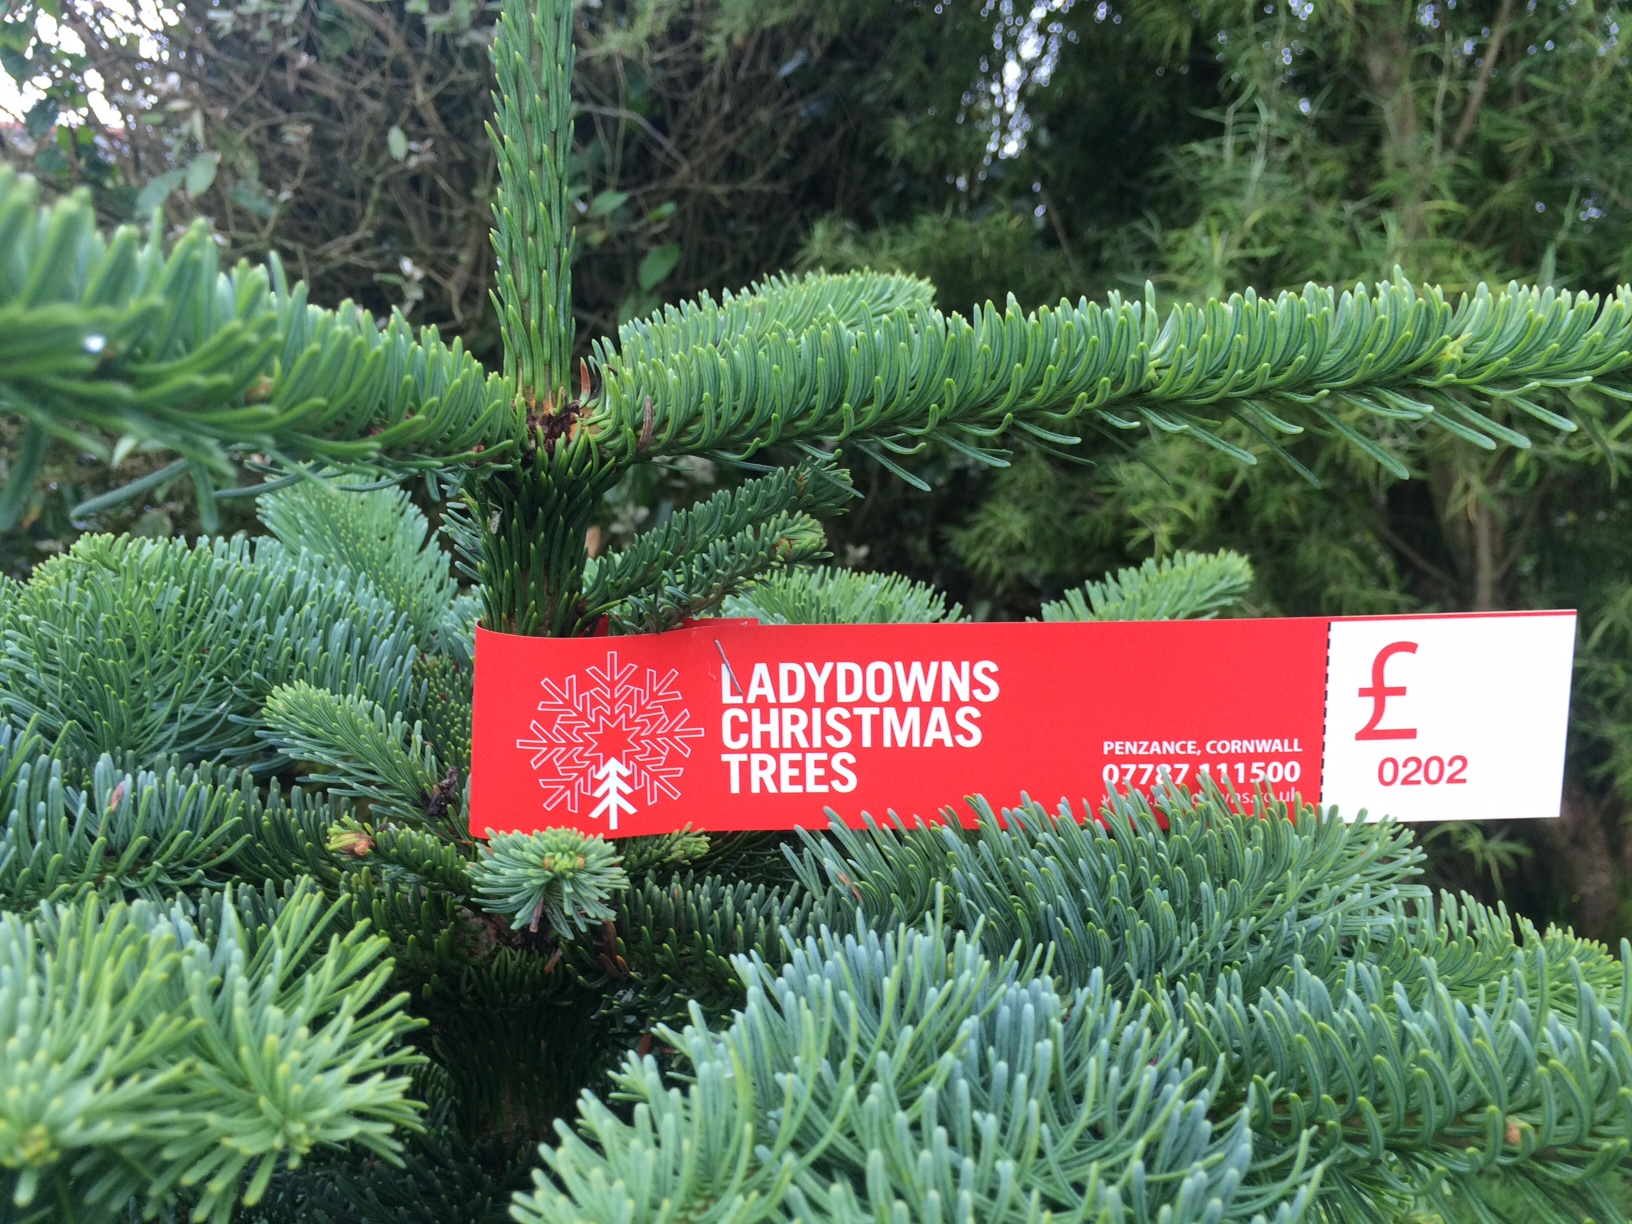 Christmas tree prices Penzance - Ladydowns Christmas Trees